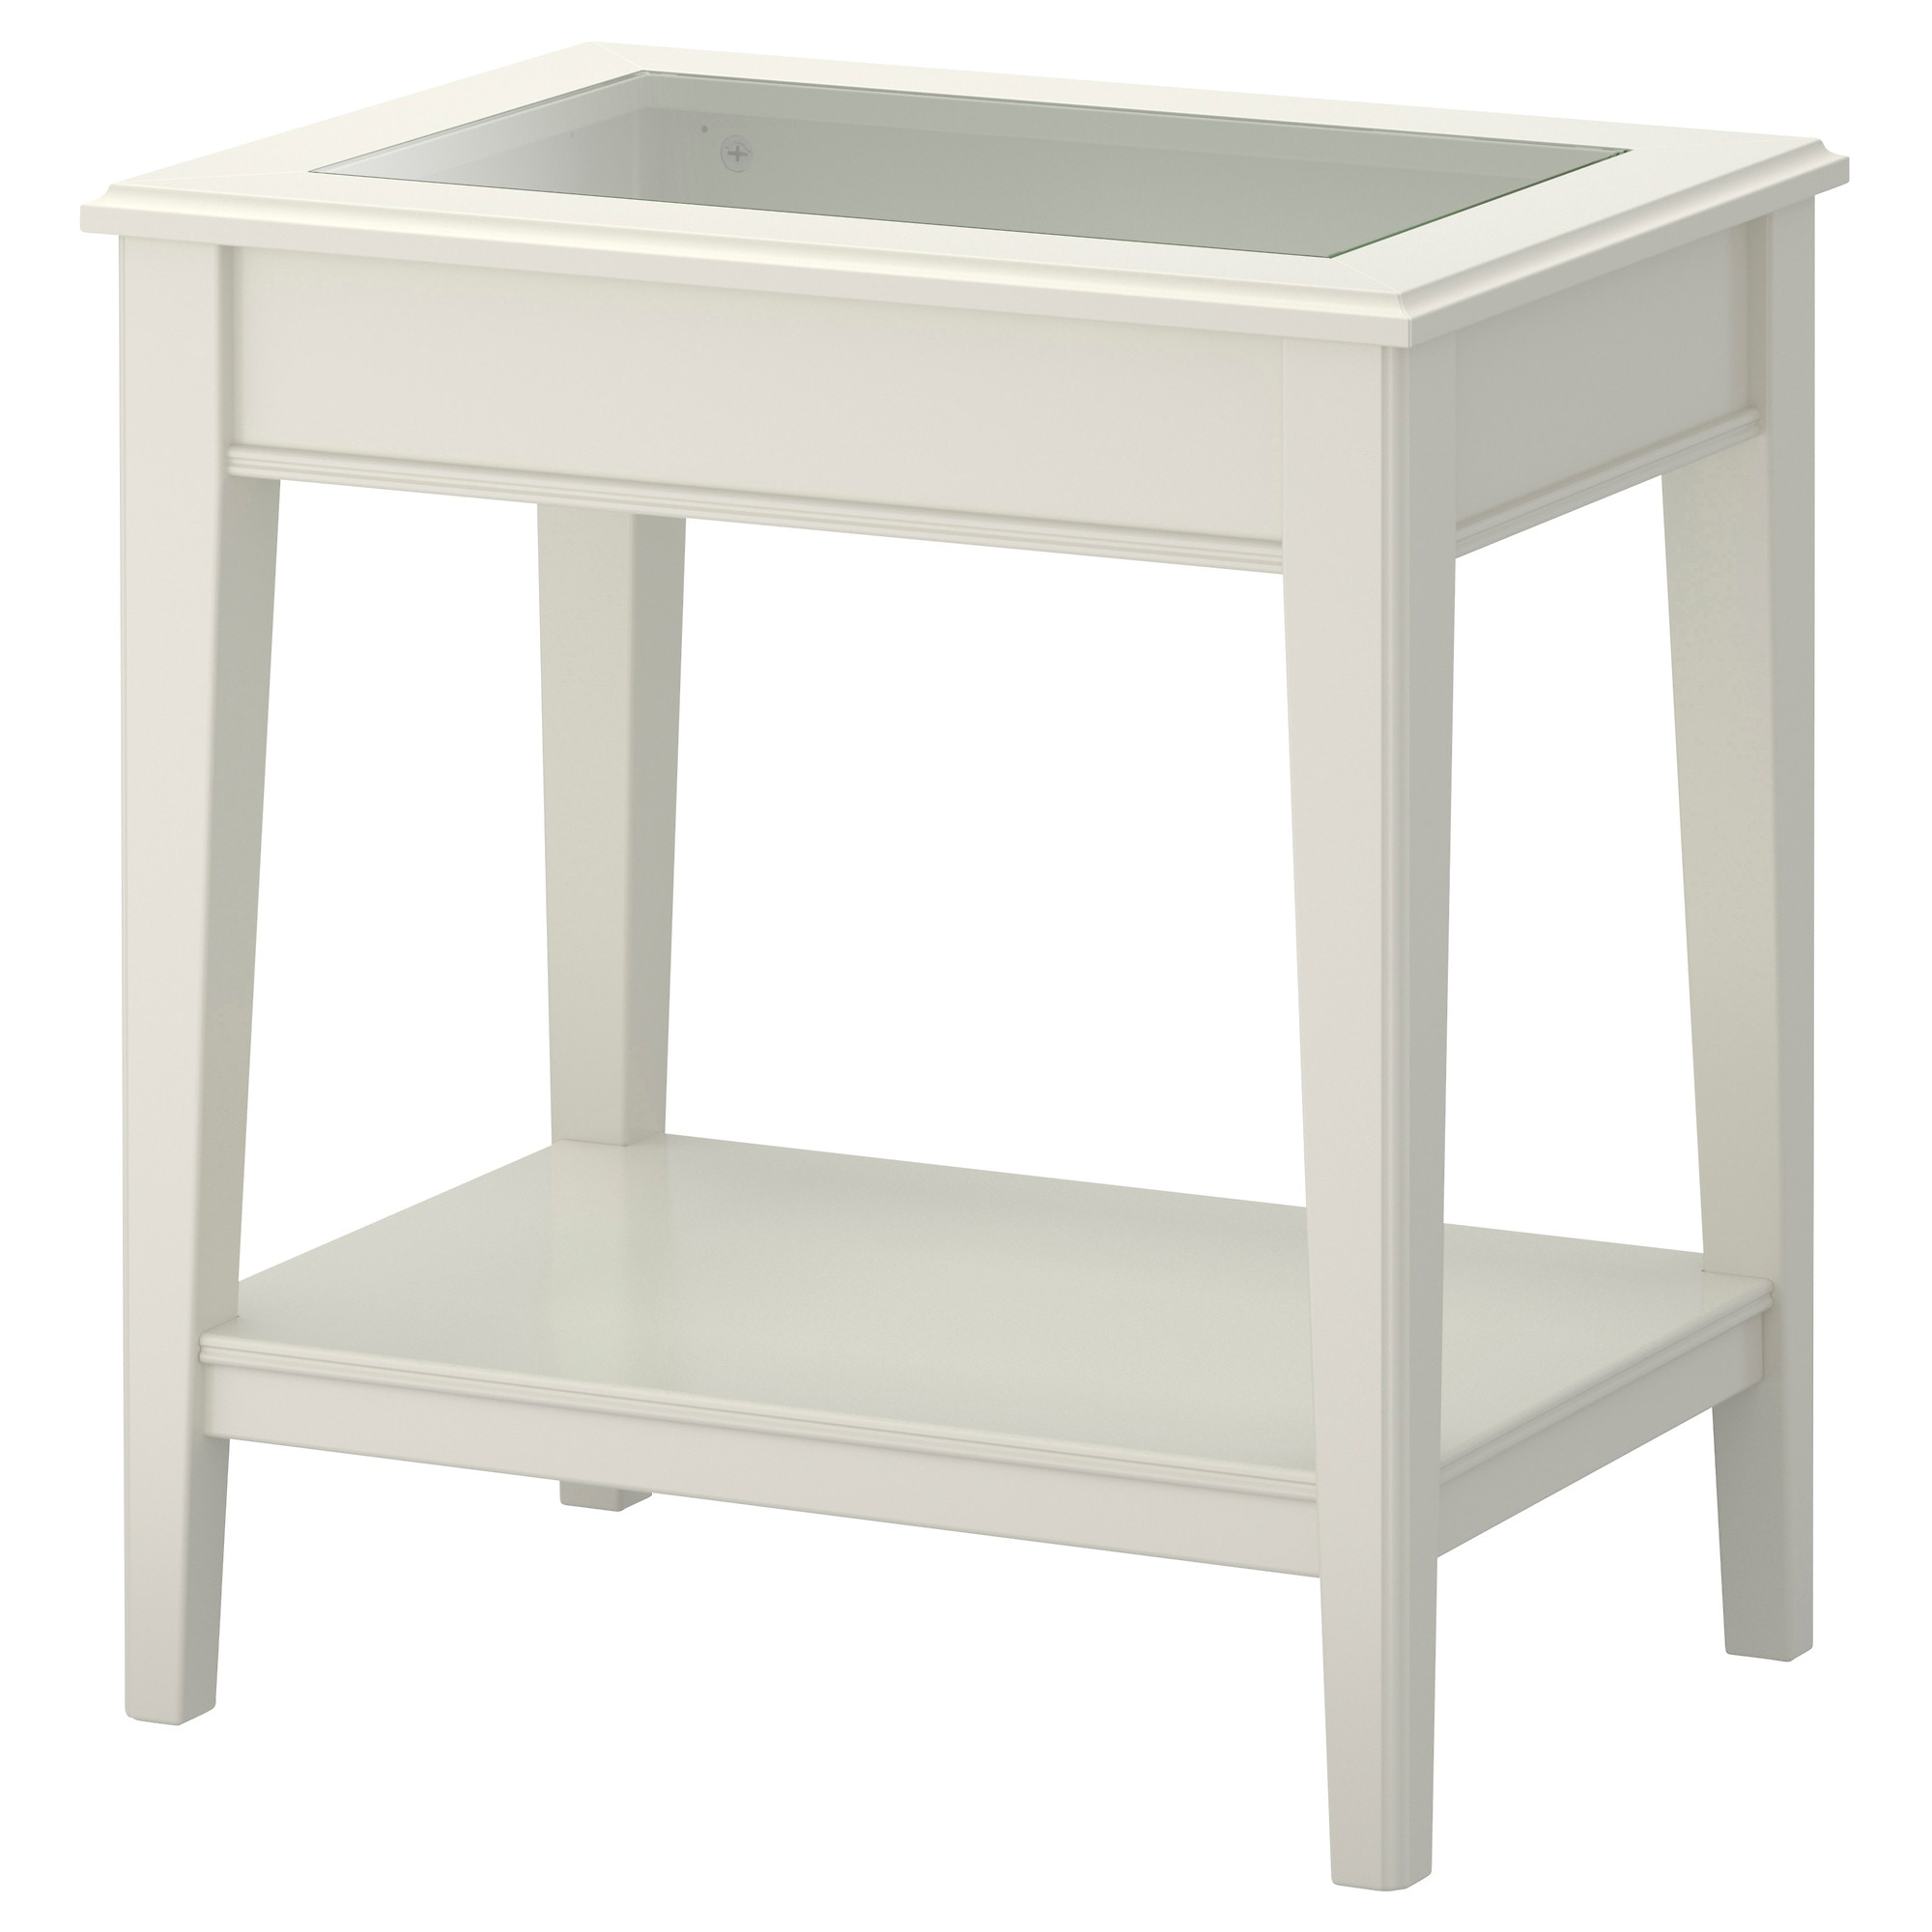 Small Night Table liatorp side table - white/glass - ikea